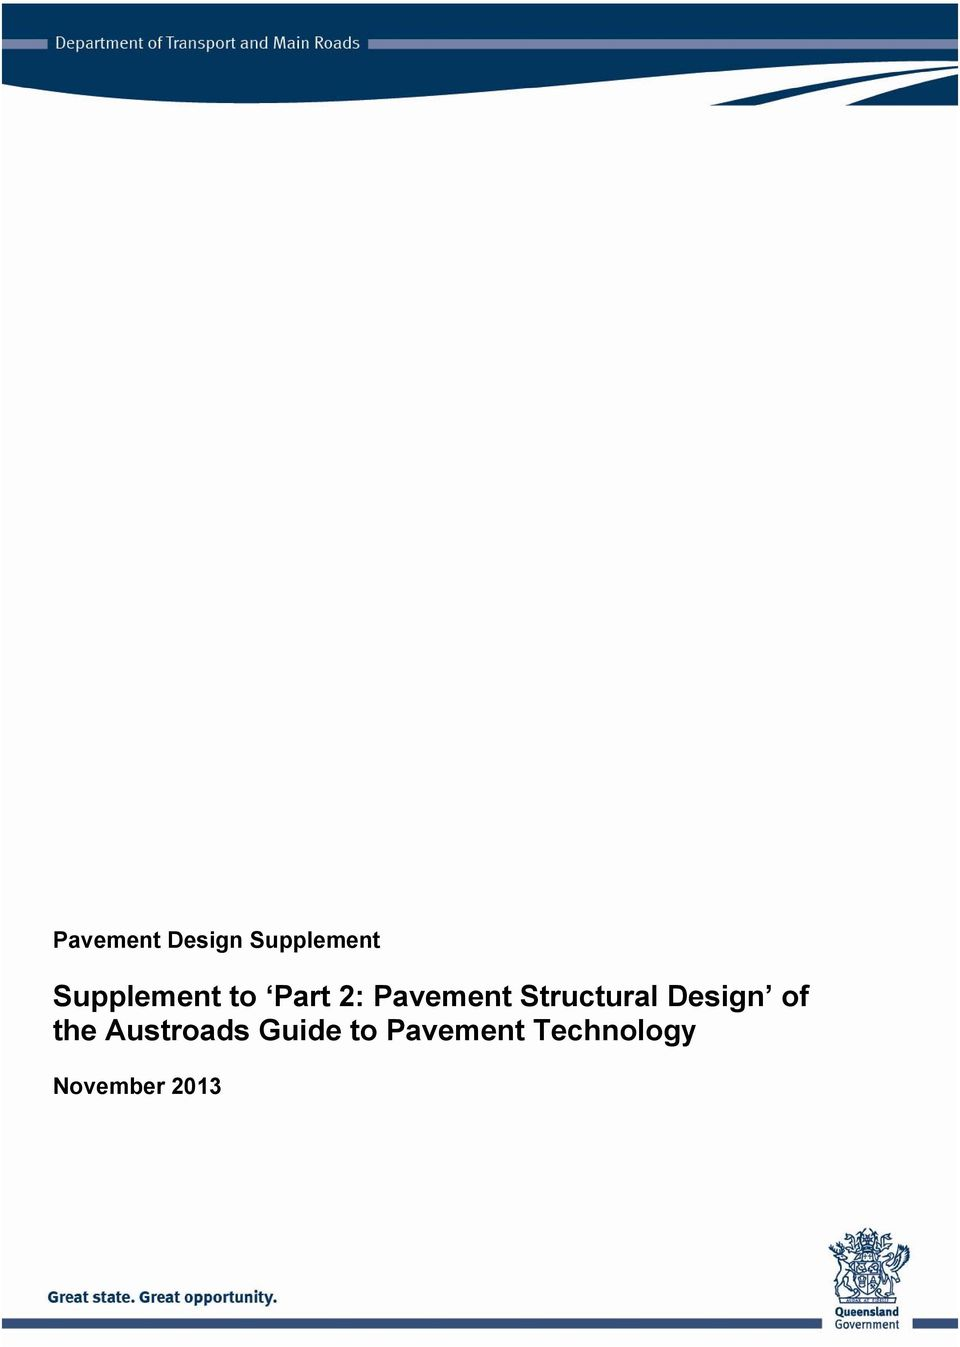 Structural Design of the